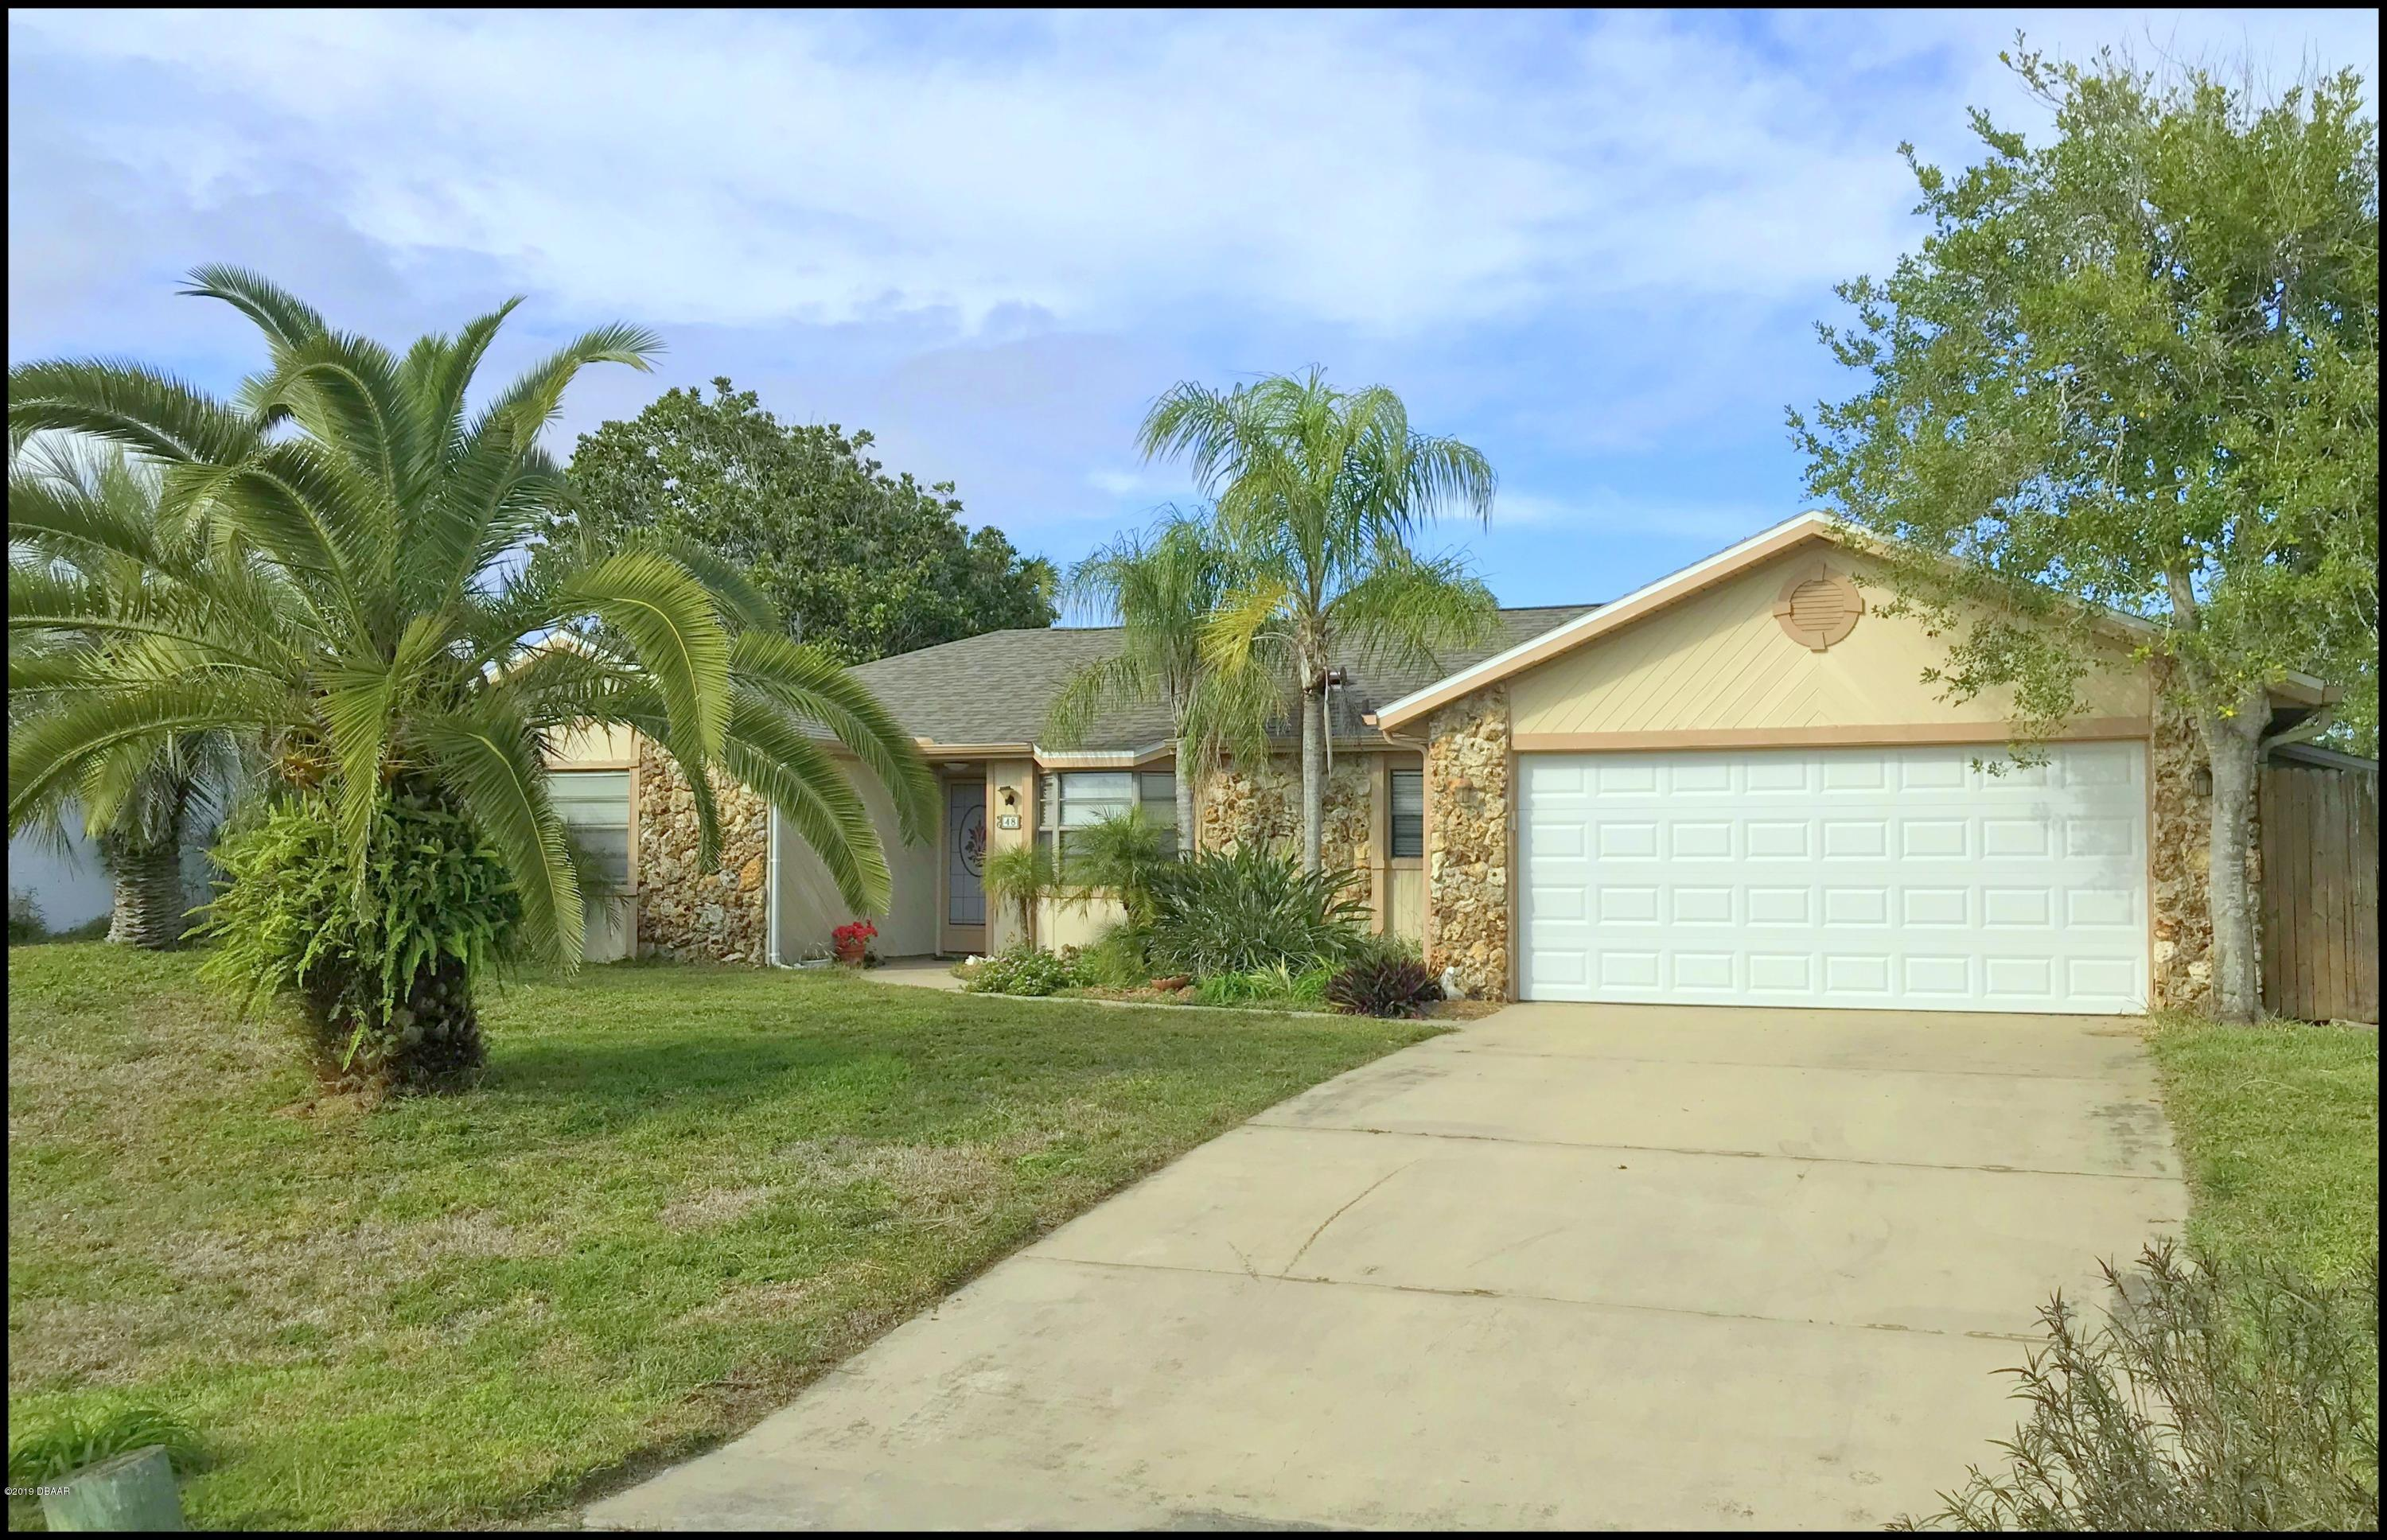 48 N Sea Island Drive, Ormond-By-The-Sea in Volusia County, FL 32176 Home for Sale